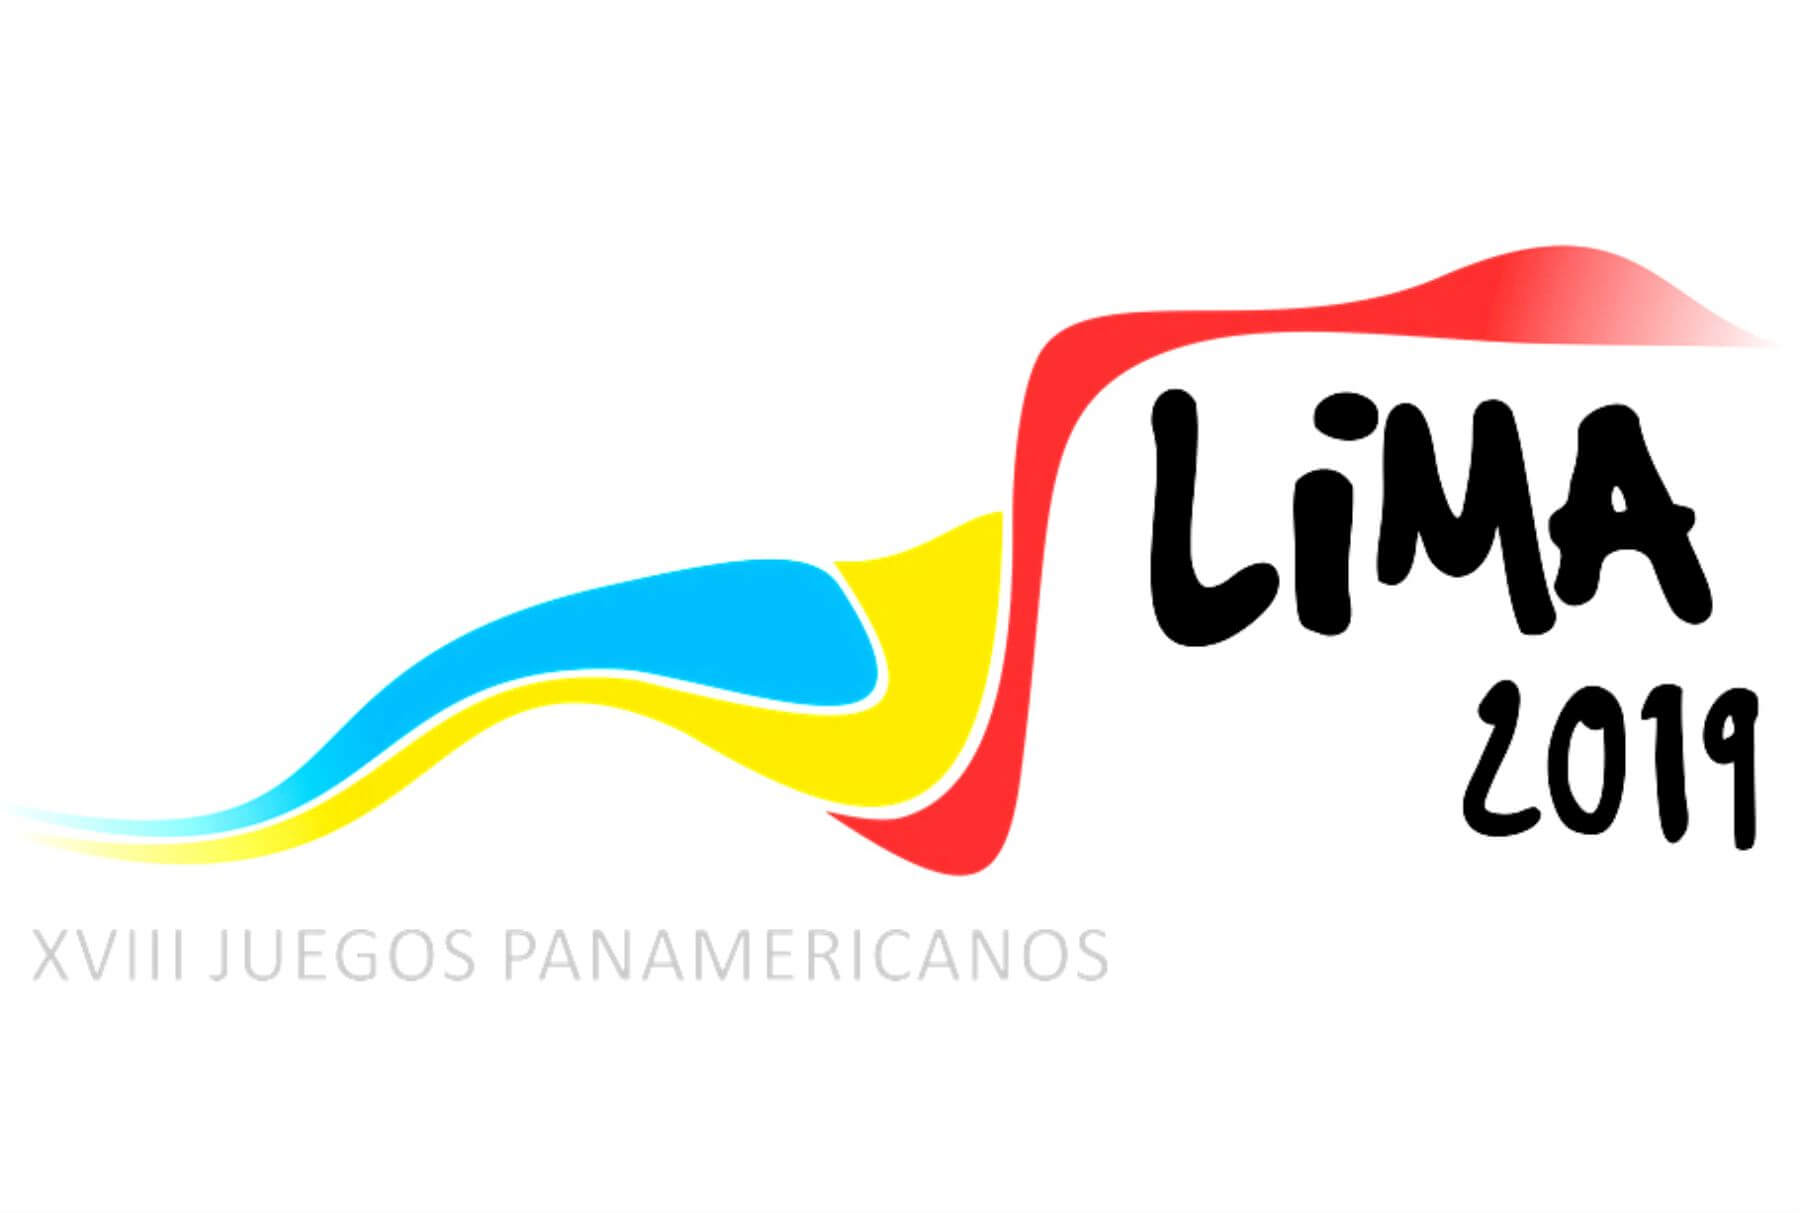 Register now to protect The Lima 2019 Games